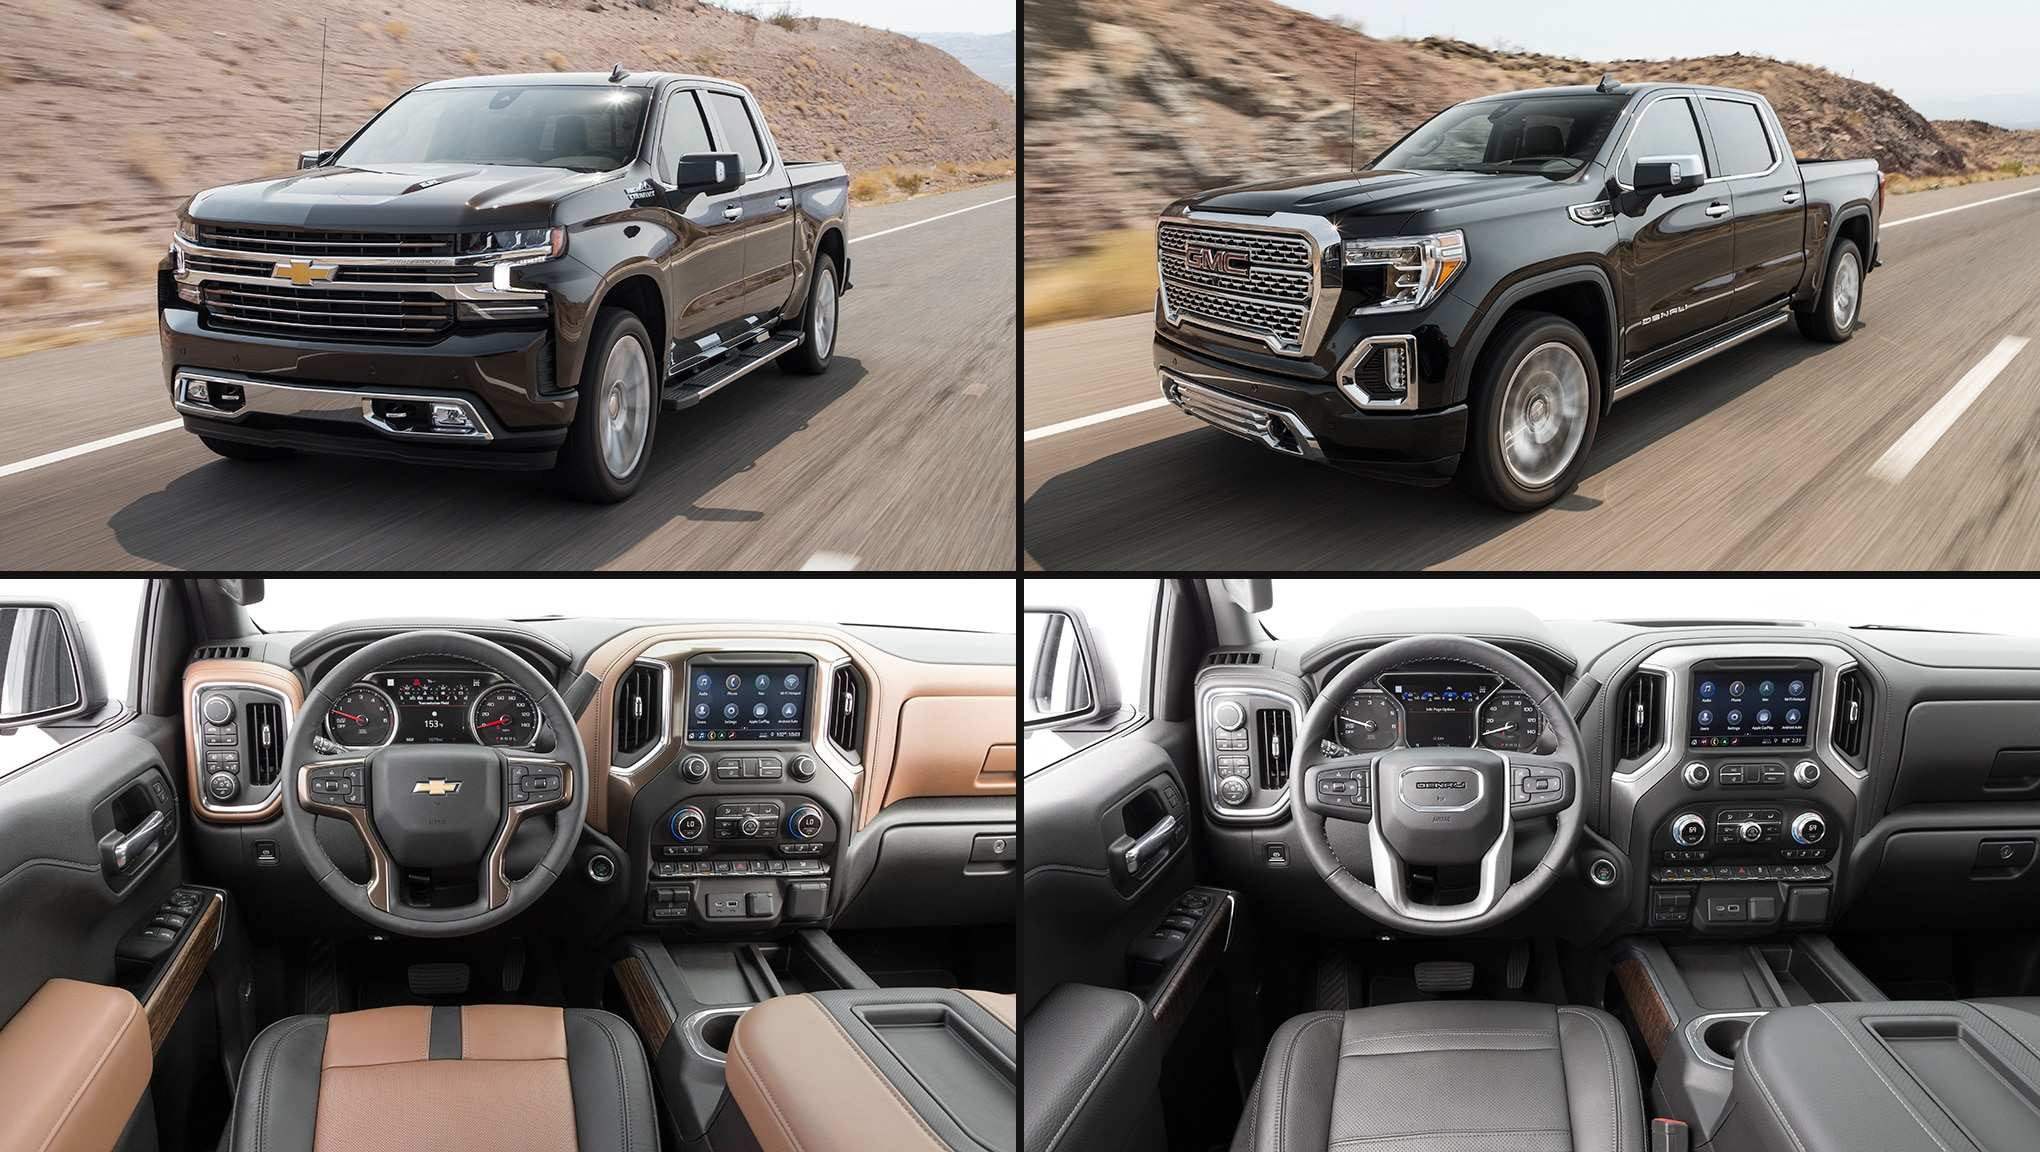 46 The Best 2019 Chevrolet High Country Interior Concept